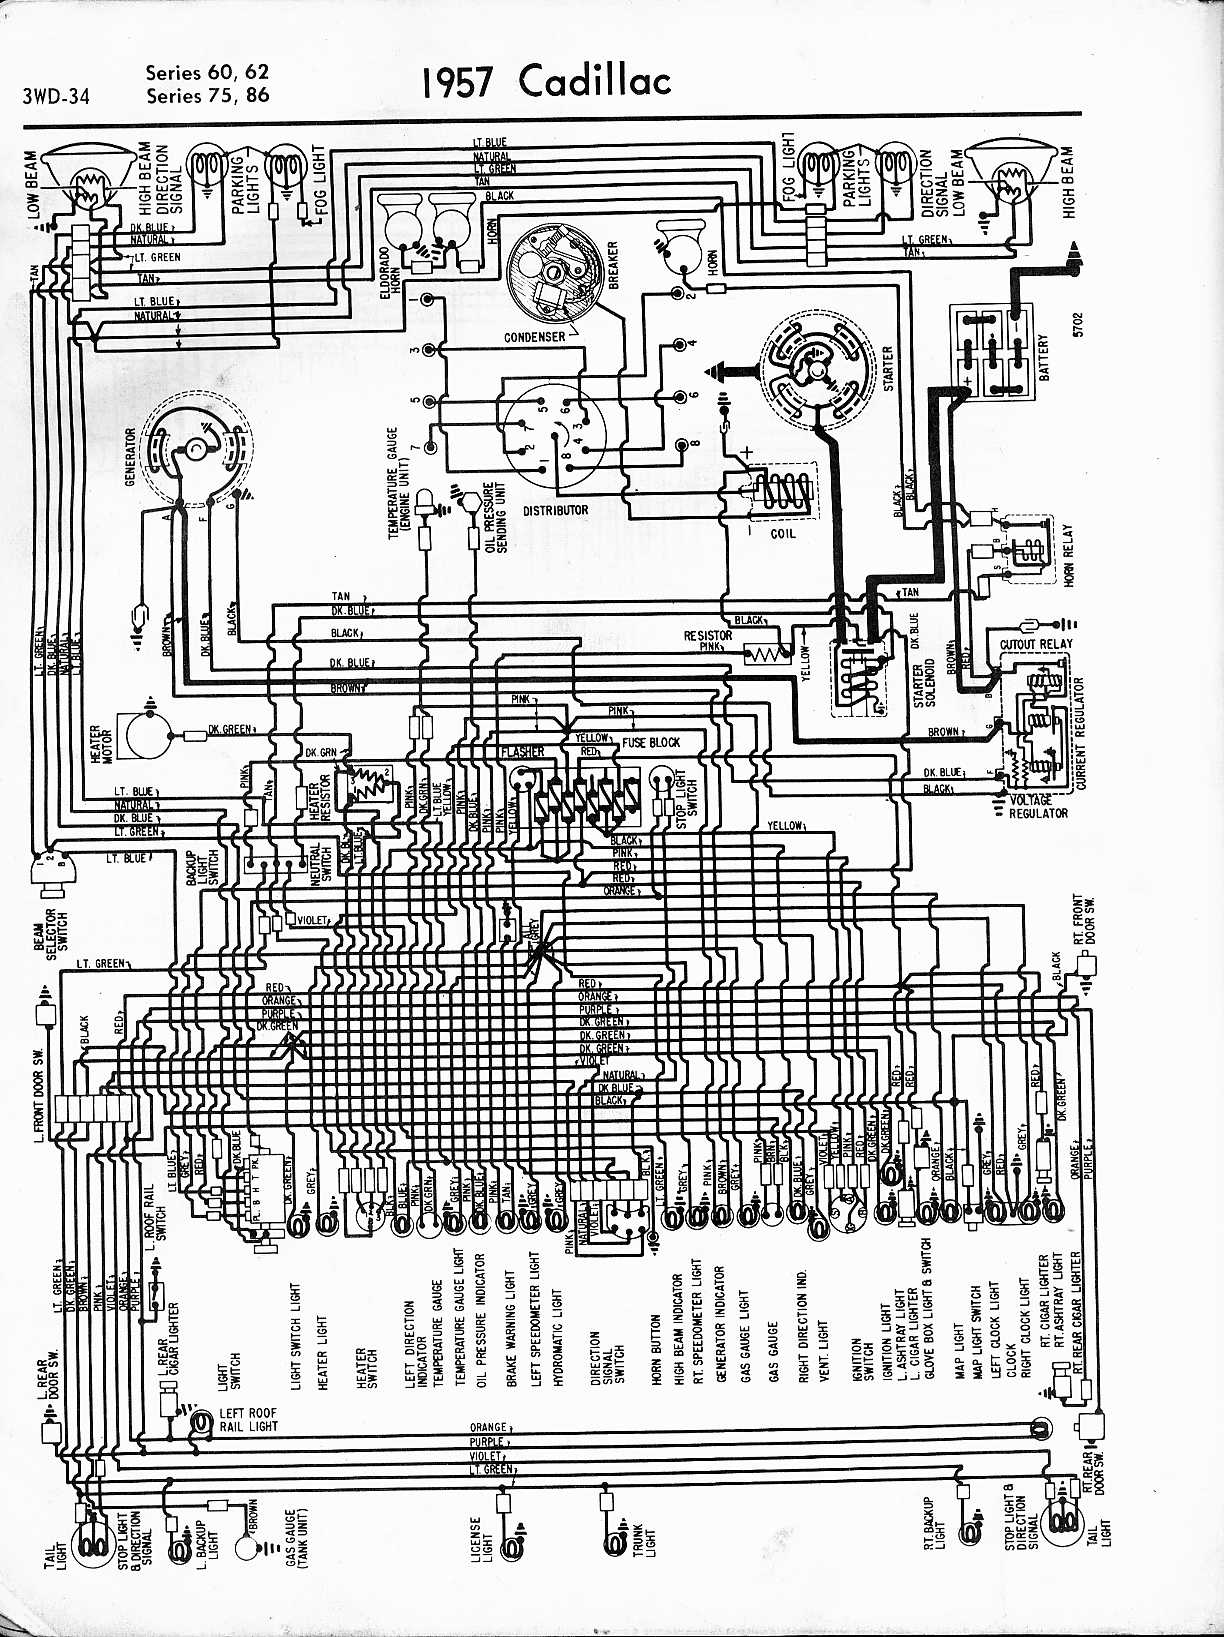 [DIAGRAM_3US]  Cadillac Wiring Diagrams: 1957-1965 | 1966 Cadillac Wiring Diagram |  | The Old Car Manual Project